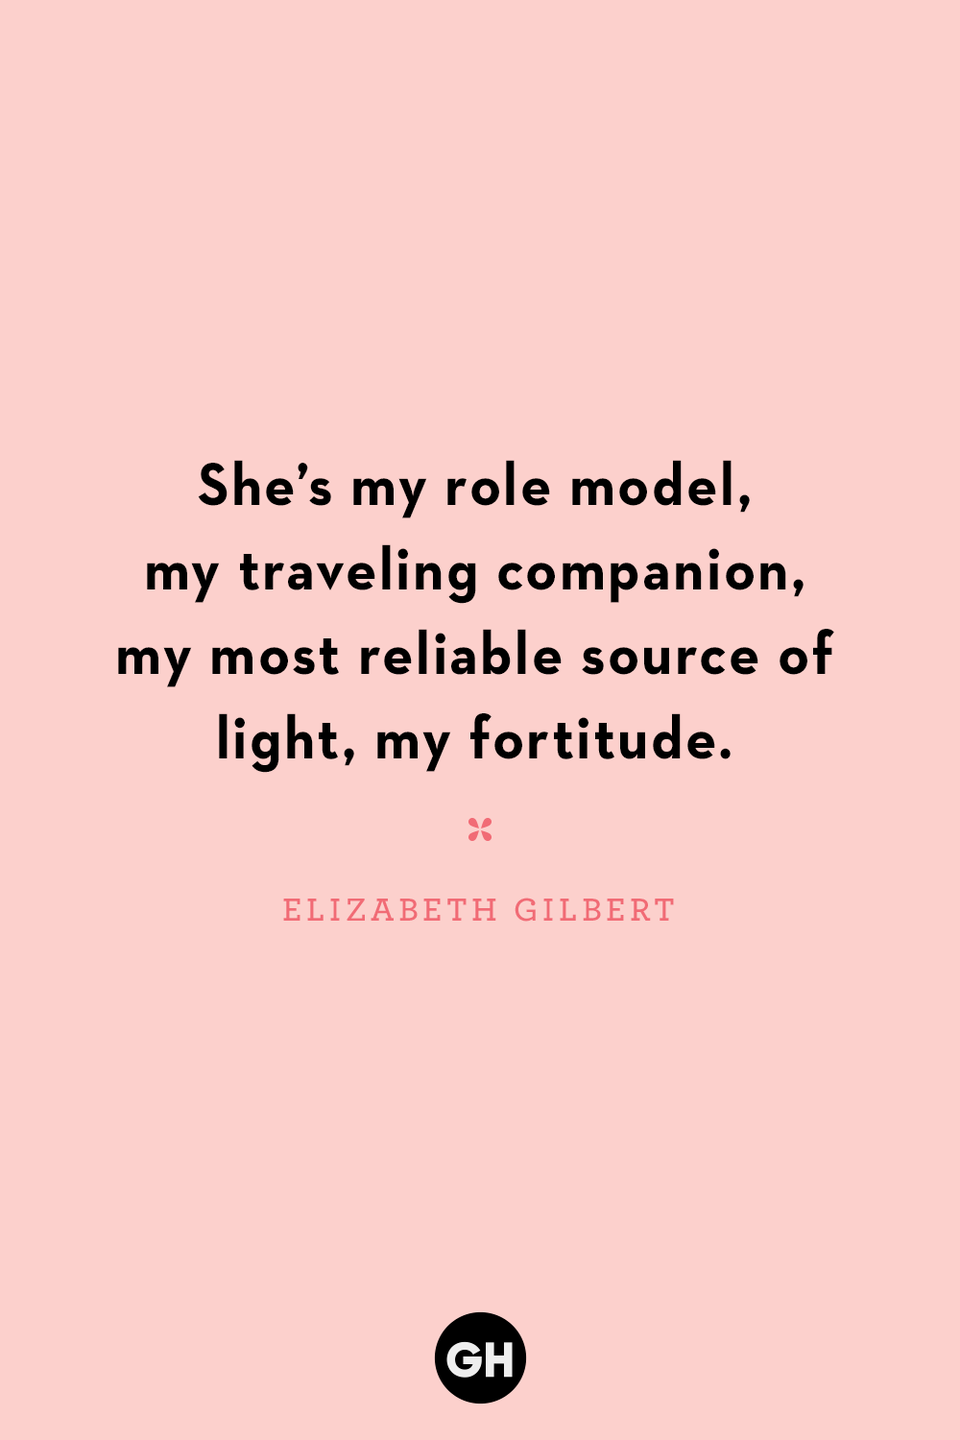 <p>She's my role model, my traveling companion, my most reliable source of light, my fortitude.</p>